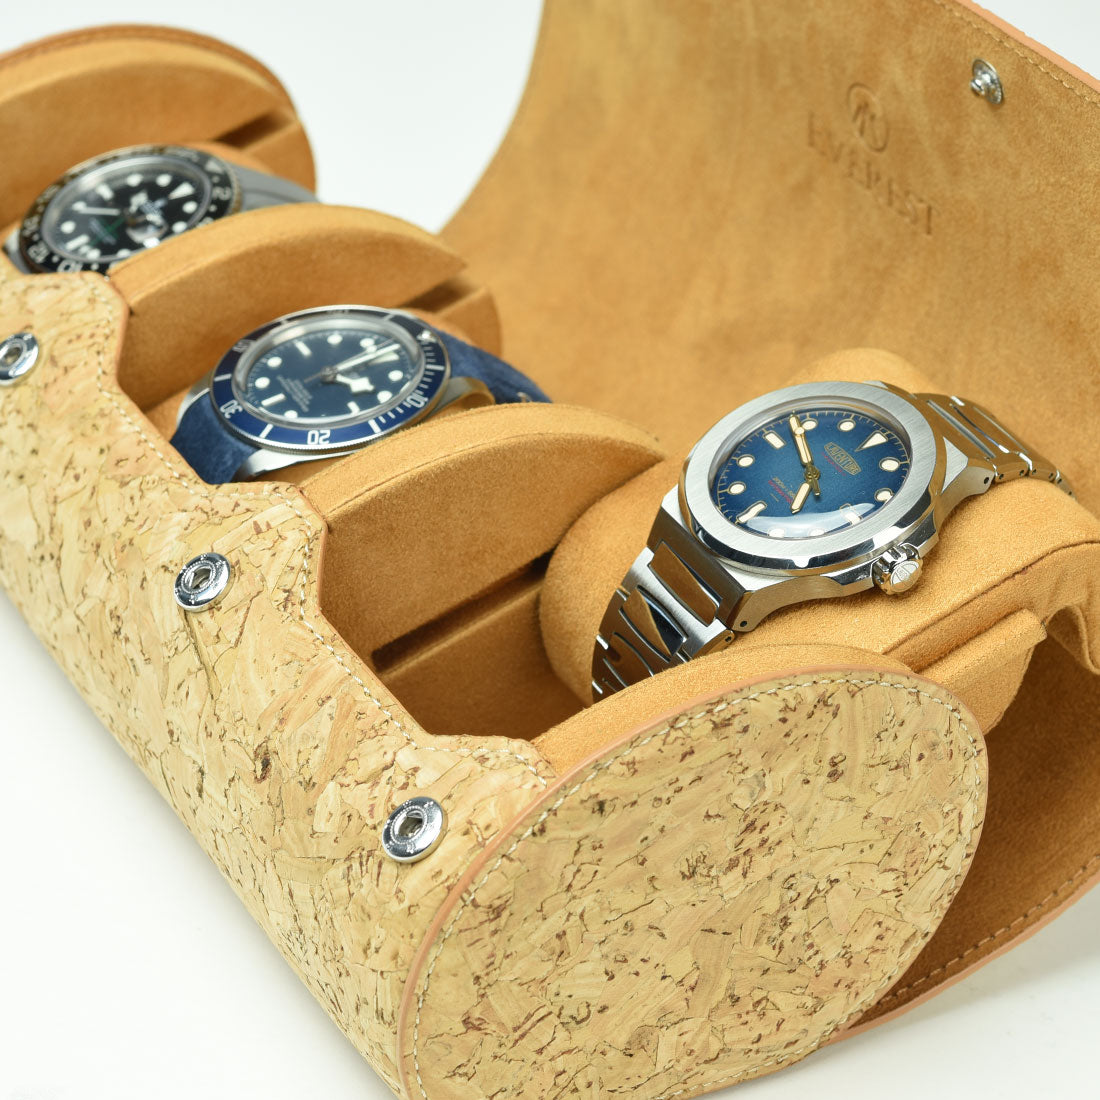 cork watch roll showing sliding rail system and french painted edge